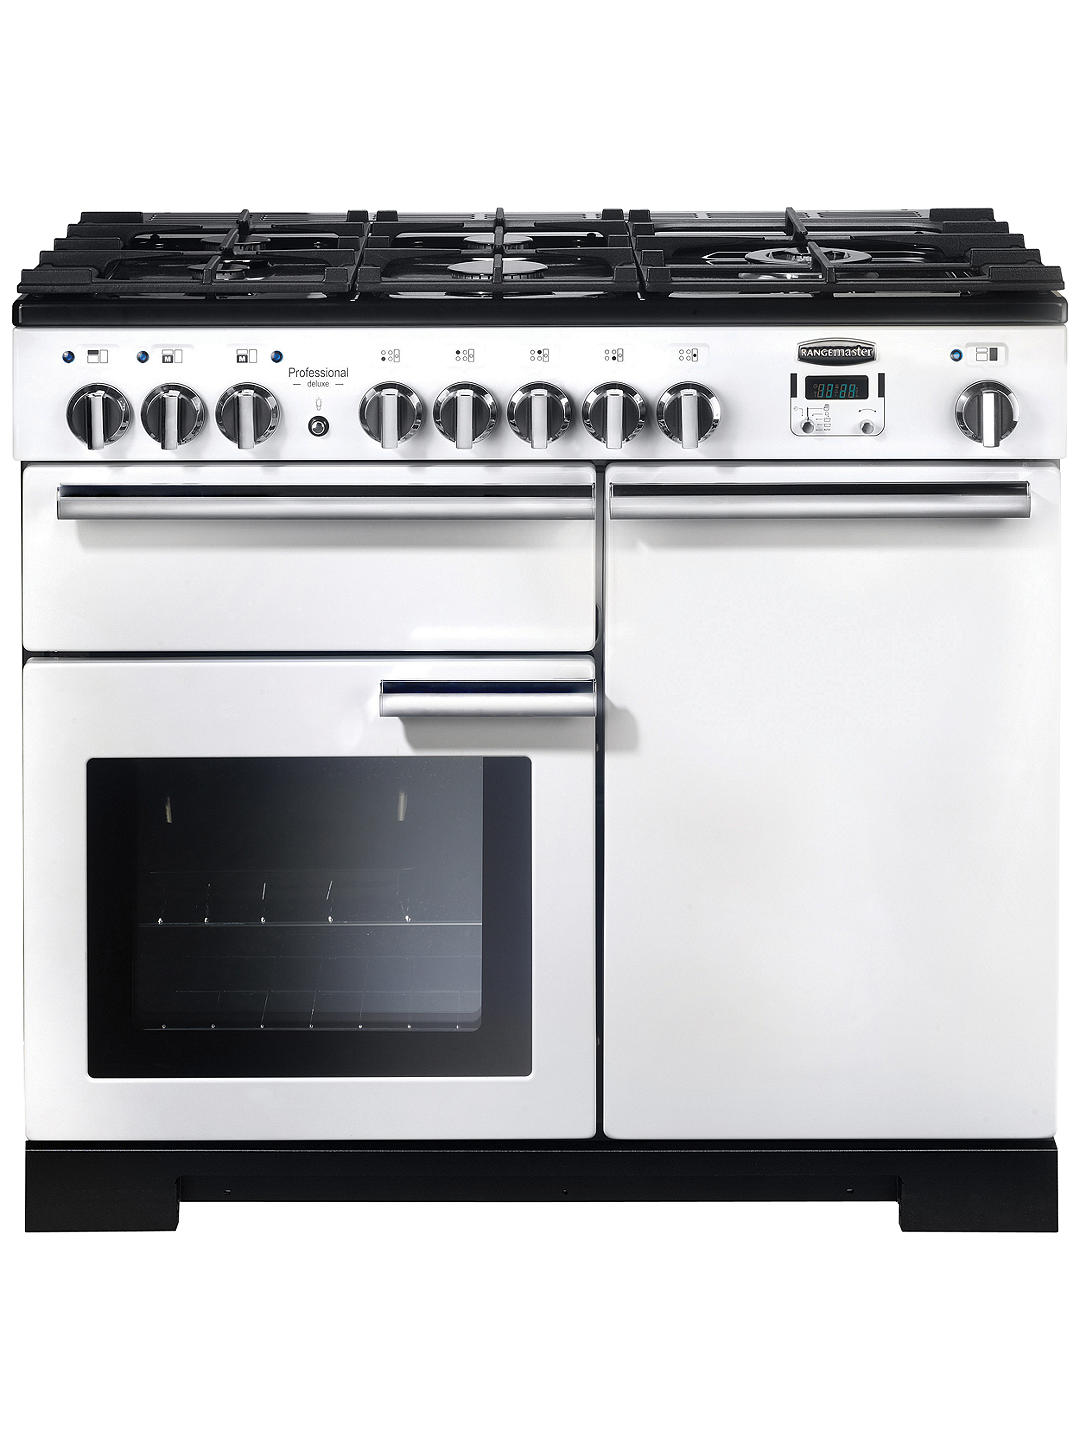 Buy Rangemaster Professional Deluxe 100 Dual Fuel Range Cooker, White/Chrome Trim Online at johnlewis.com